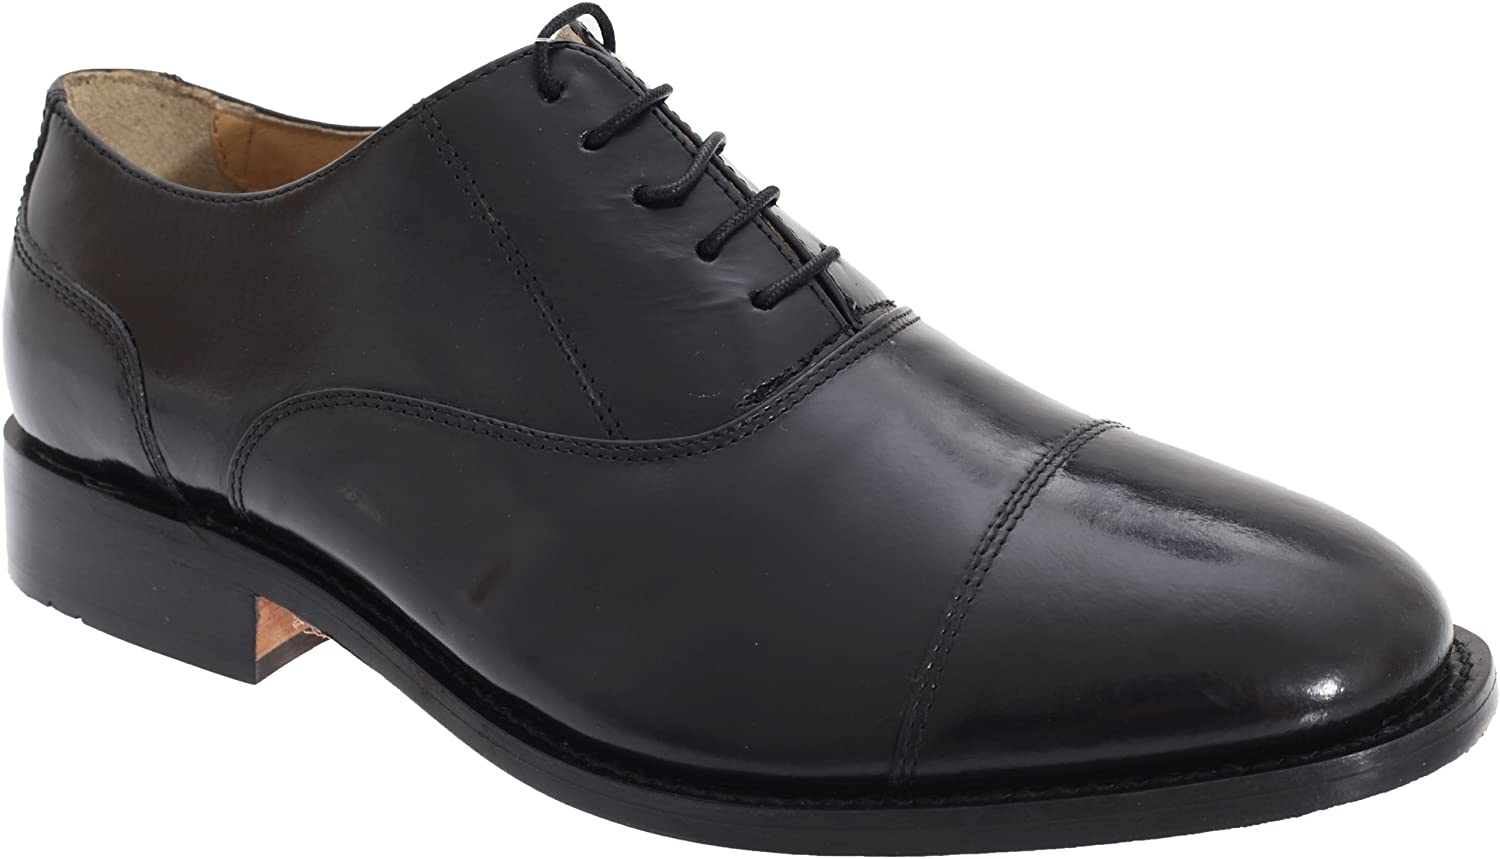 Kensington Classics Mens Premium silverinian All Leather Capped Oxford shoes